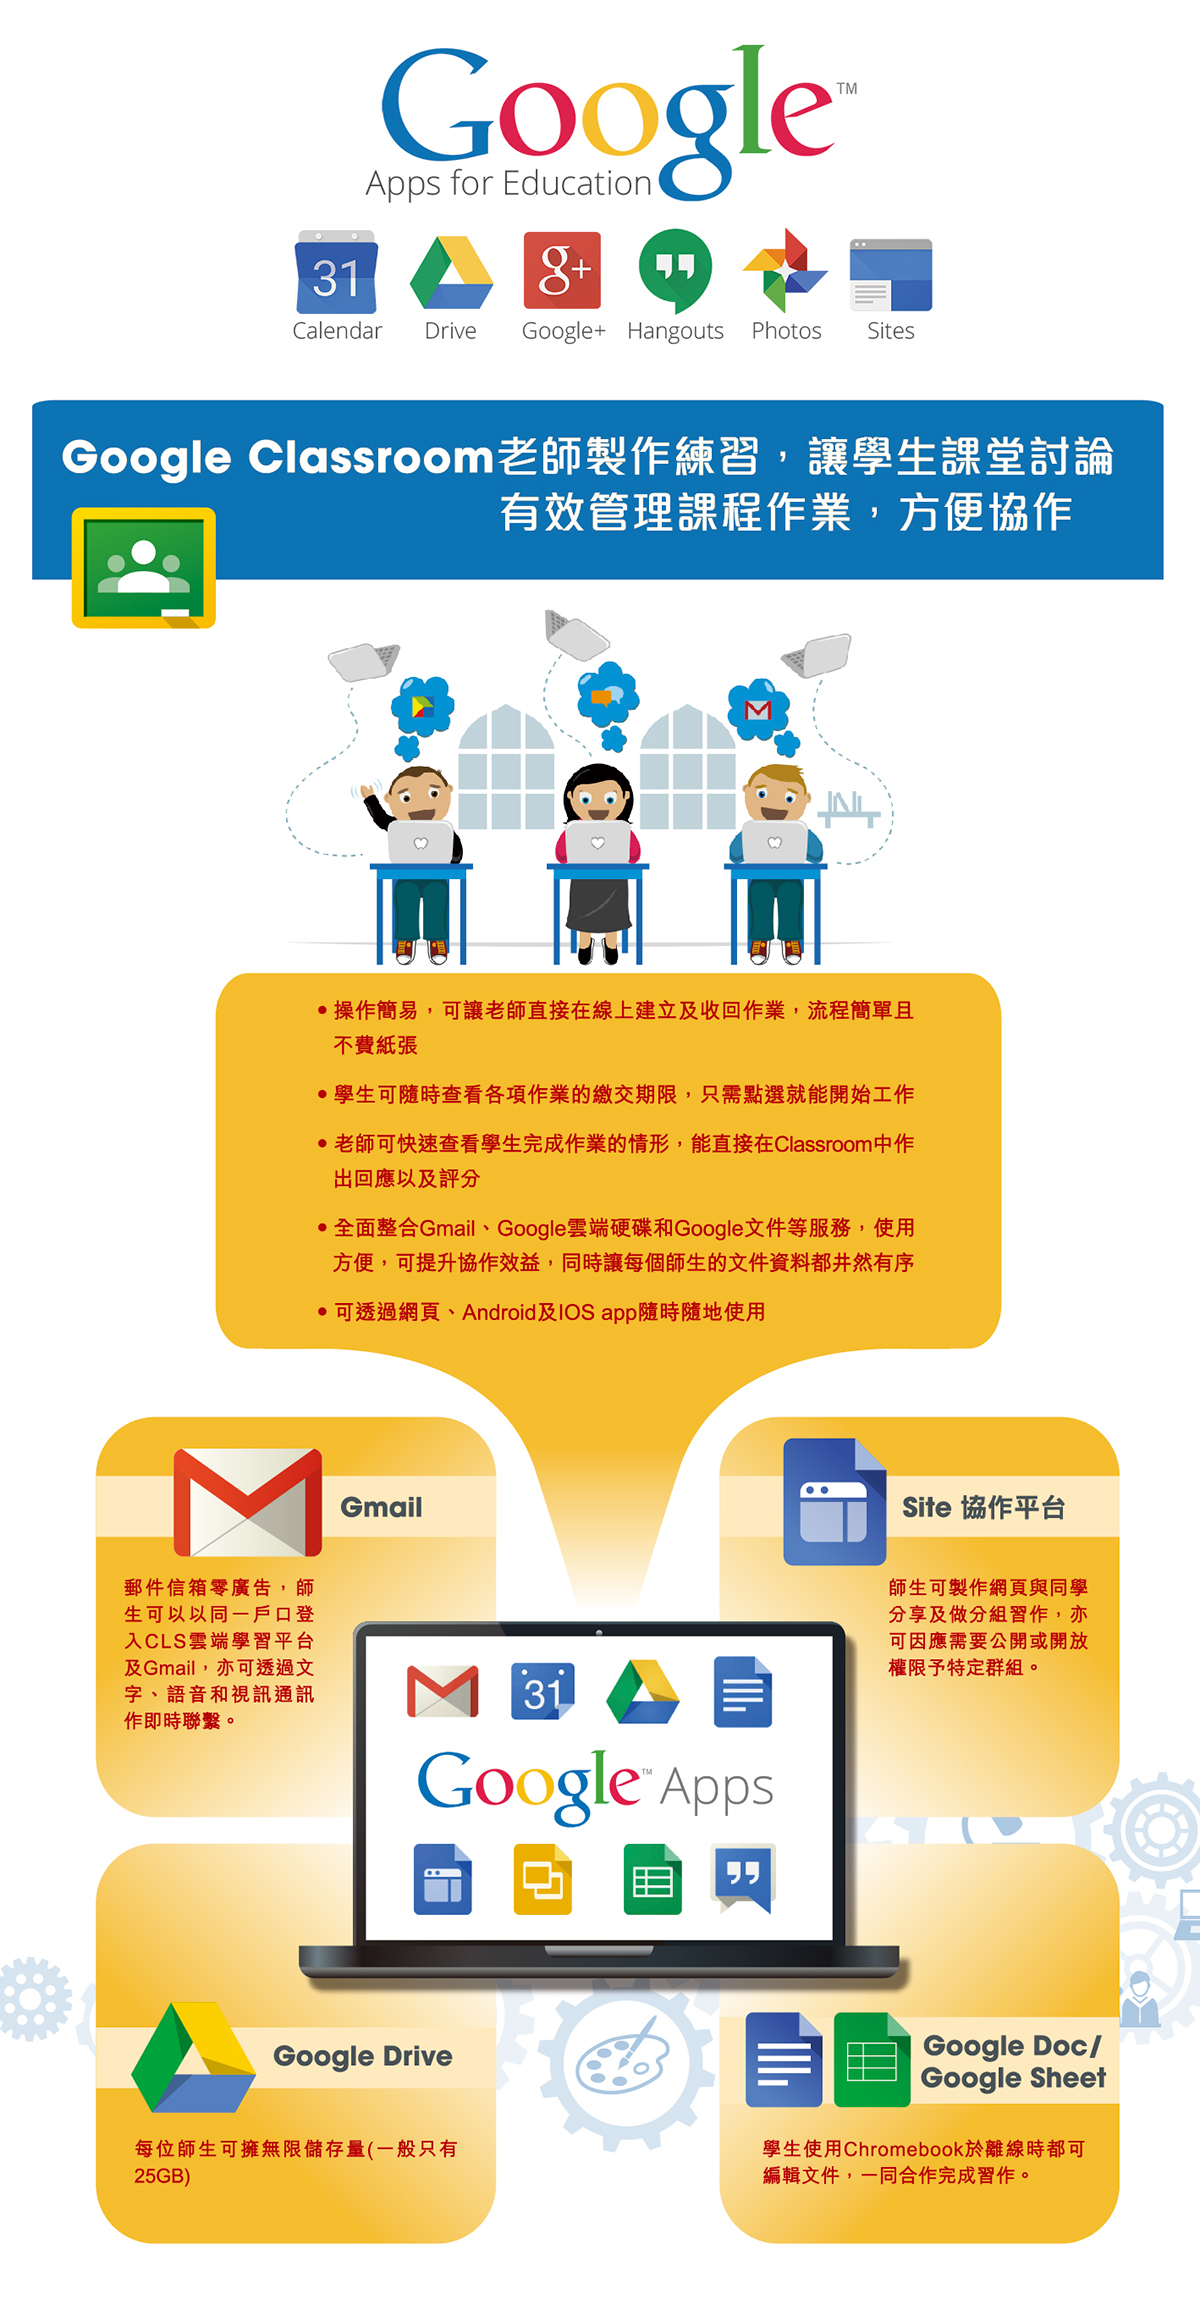 infographic for google apps for education on student show